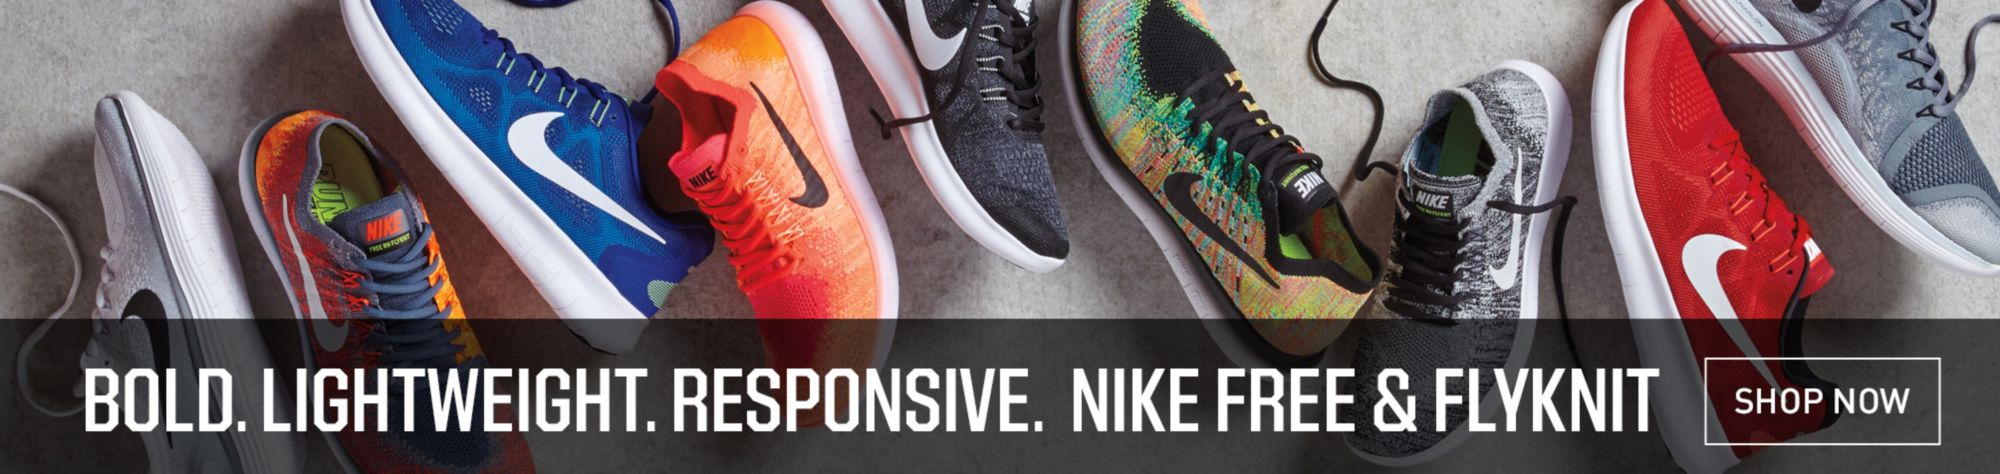 Shop Nike Free And Flyknit